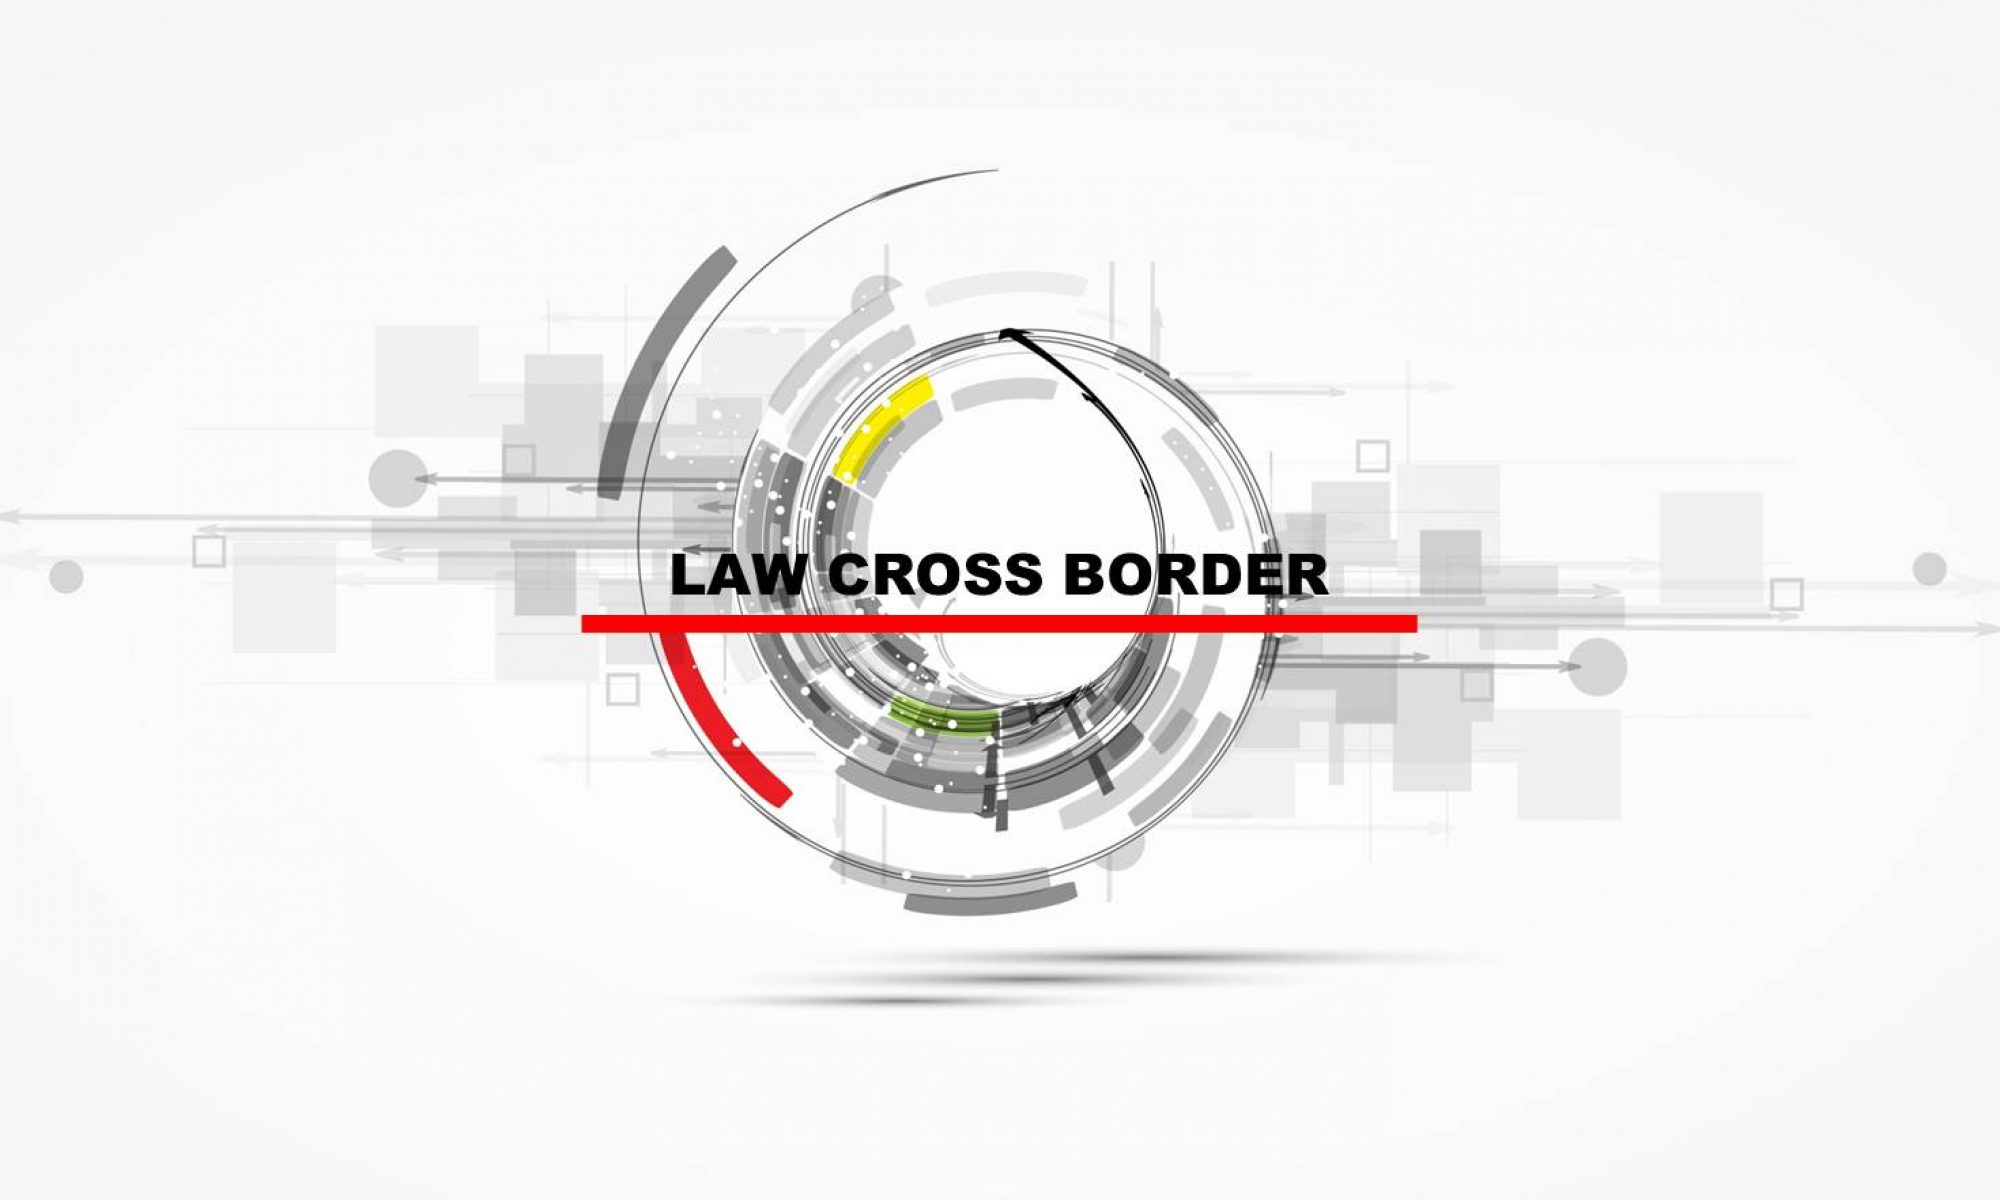 Law Cross Border